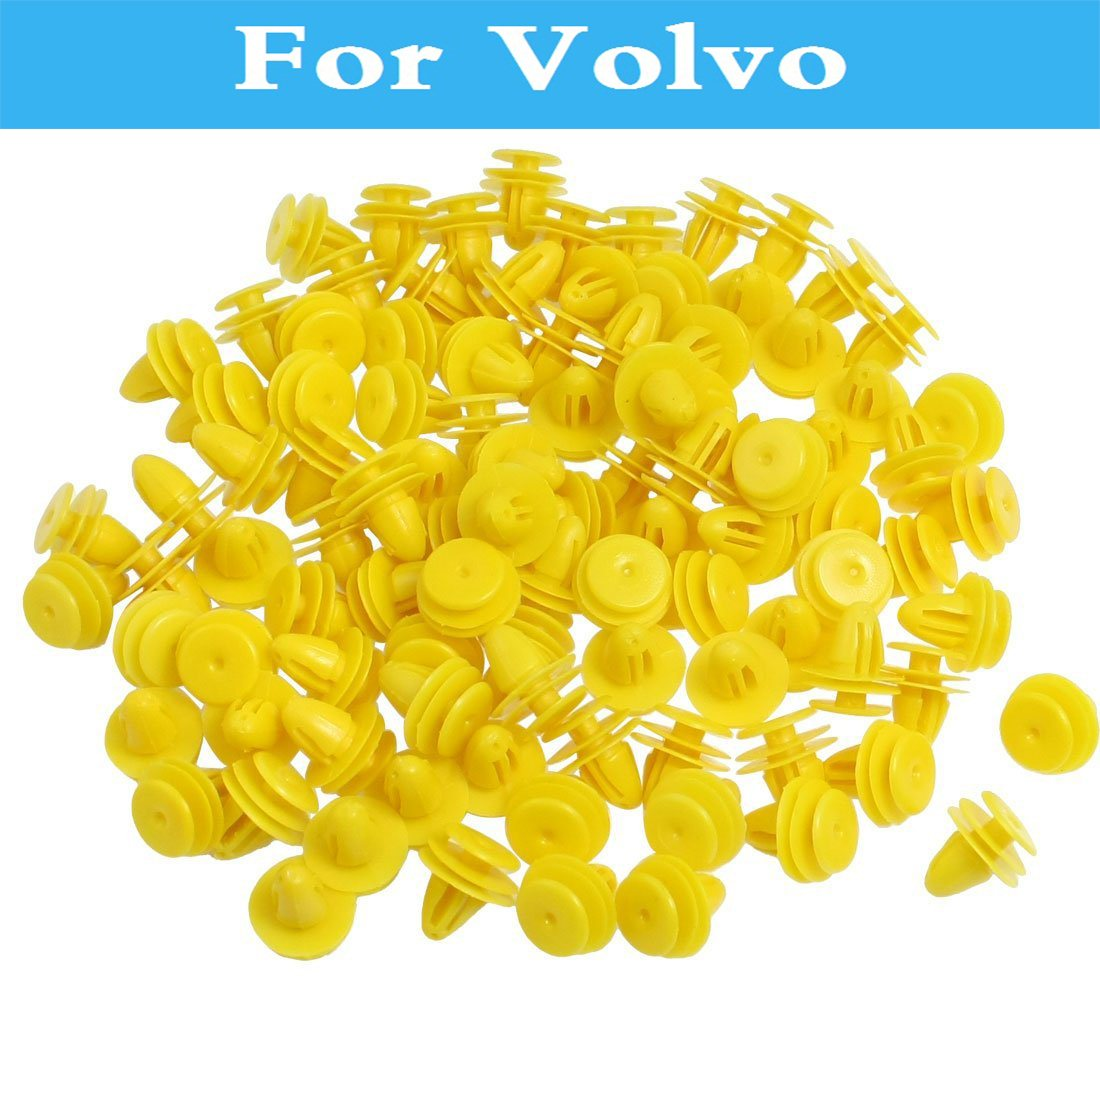 50pcs Yellow Plastic Rivet Car Door Trim Panel Clips For Volvo S40 S60 S80 Xc90 C30 C70 V40 V50 V60 Cross Country V70 Xc60 Xc70 whatskey uncut blade transponder ignition car key shell case for volvo s40 s60 s70 s80 v40 v70 xc60 xc70 xc90 850 960 c70 v7 d30